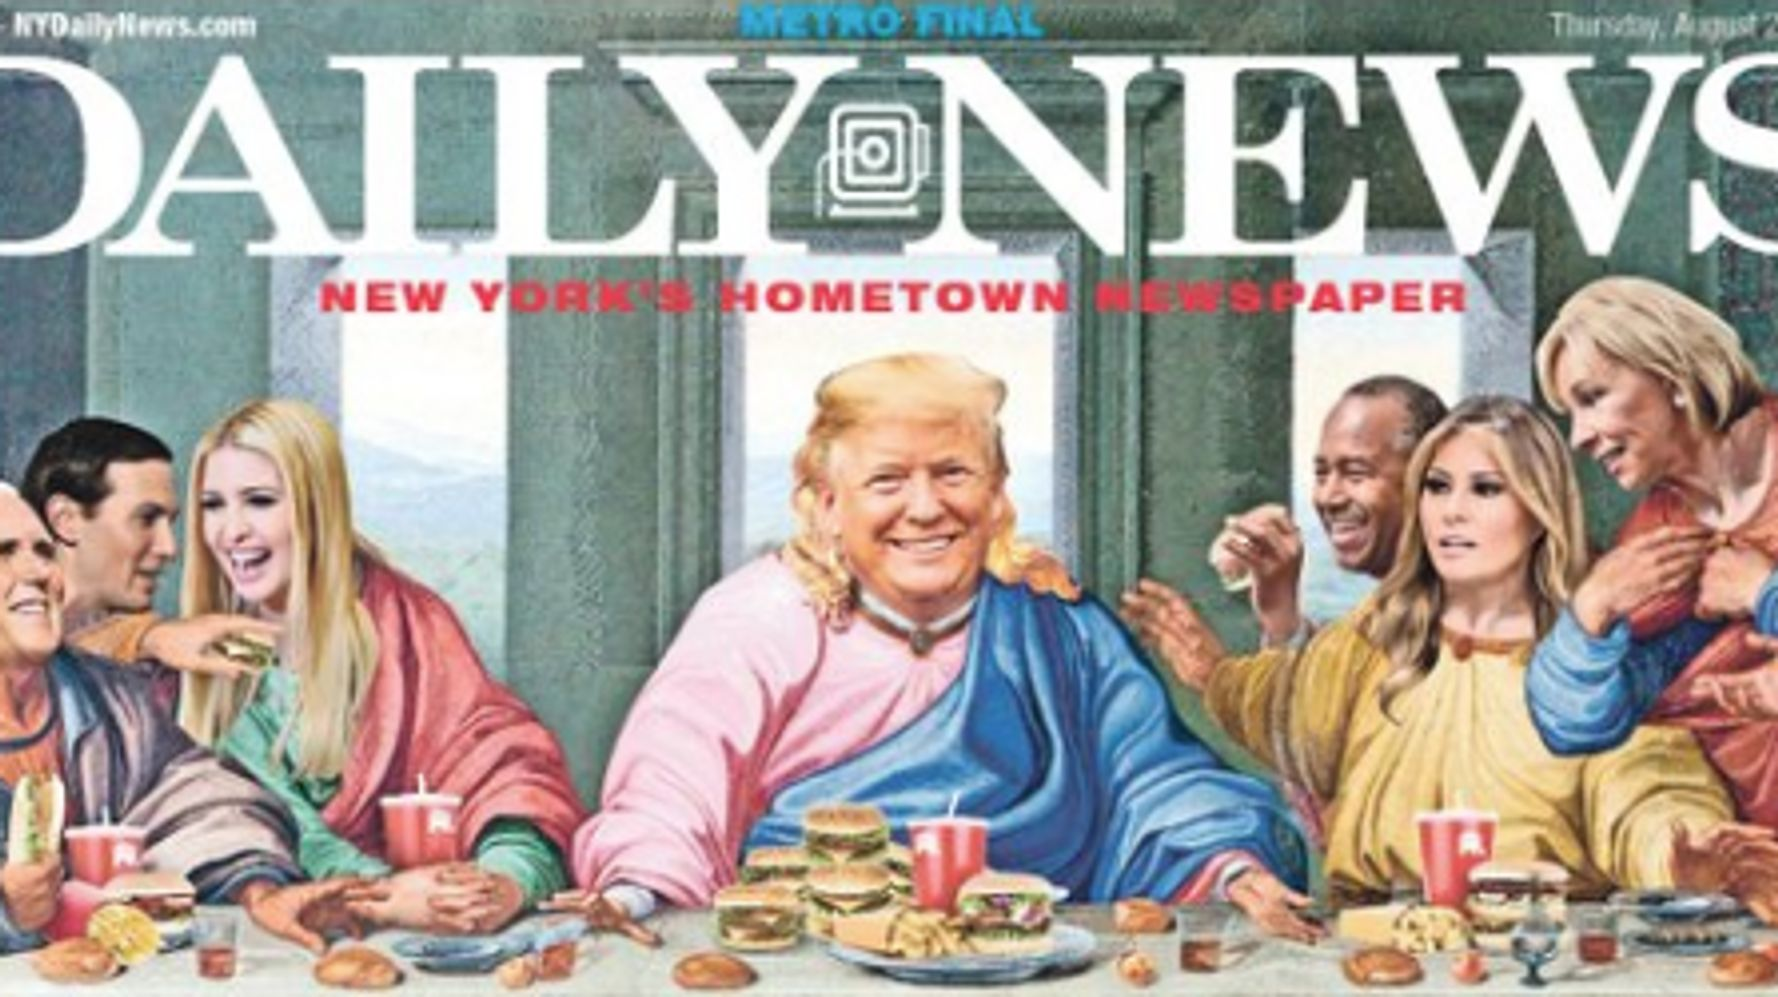 New York Daily News Batters Donald Trump With A Biblical